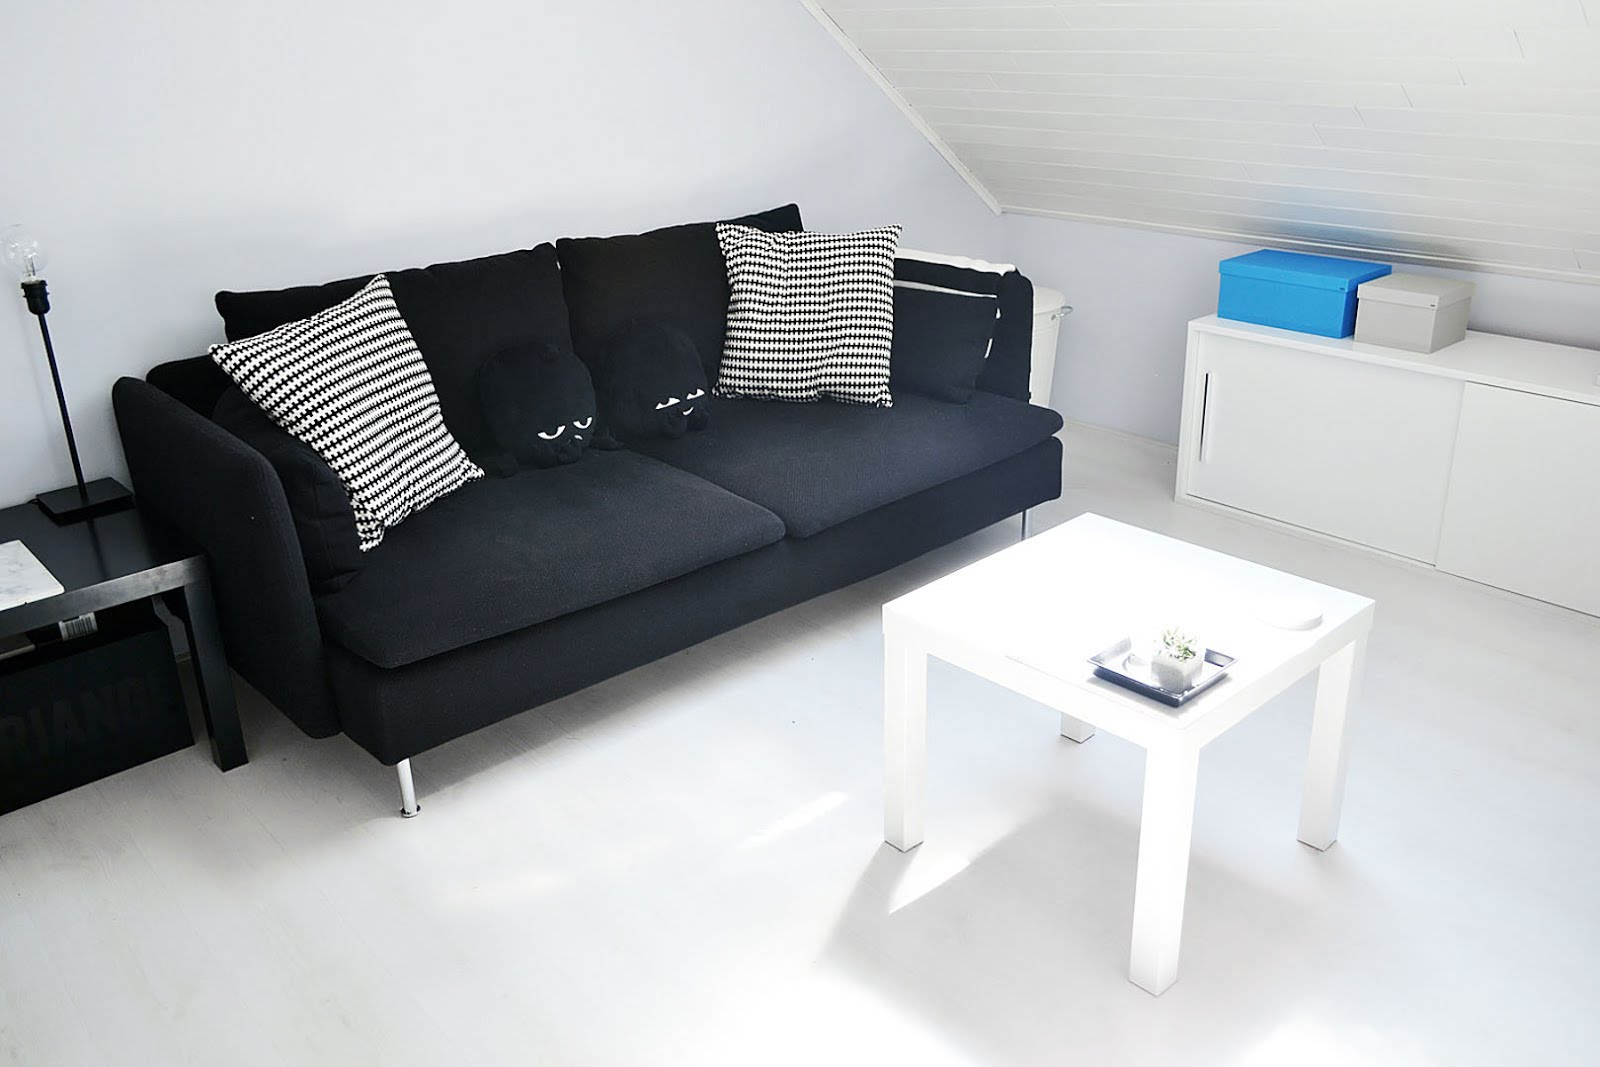 IKEA soderhamn, black cover, ikea lack table white, monkis, animals, black sofa,